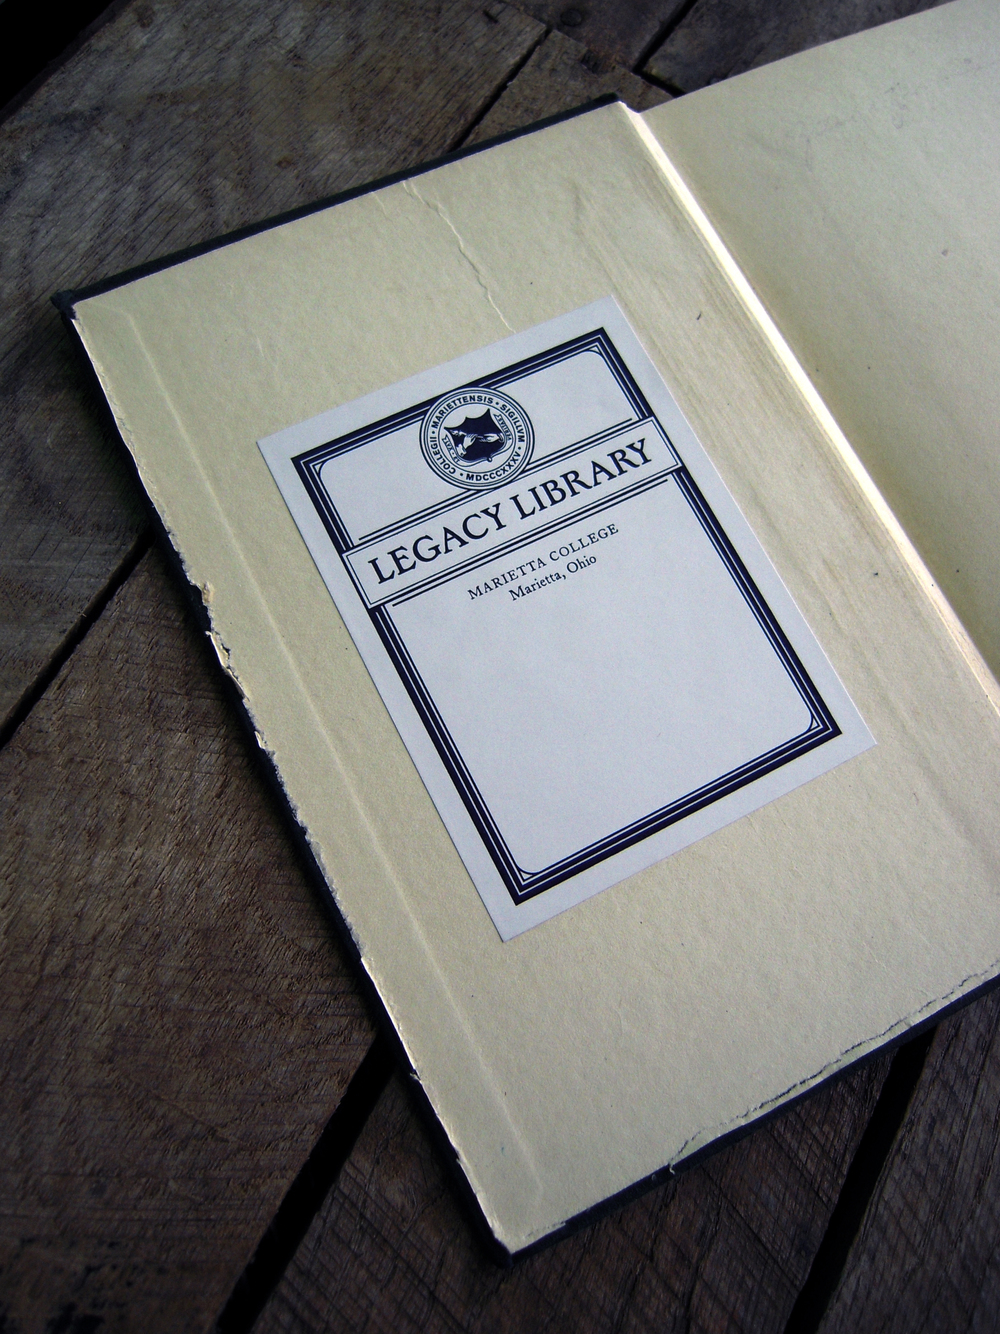 LegacyLibrary_Bookplate.jpg